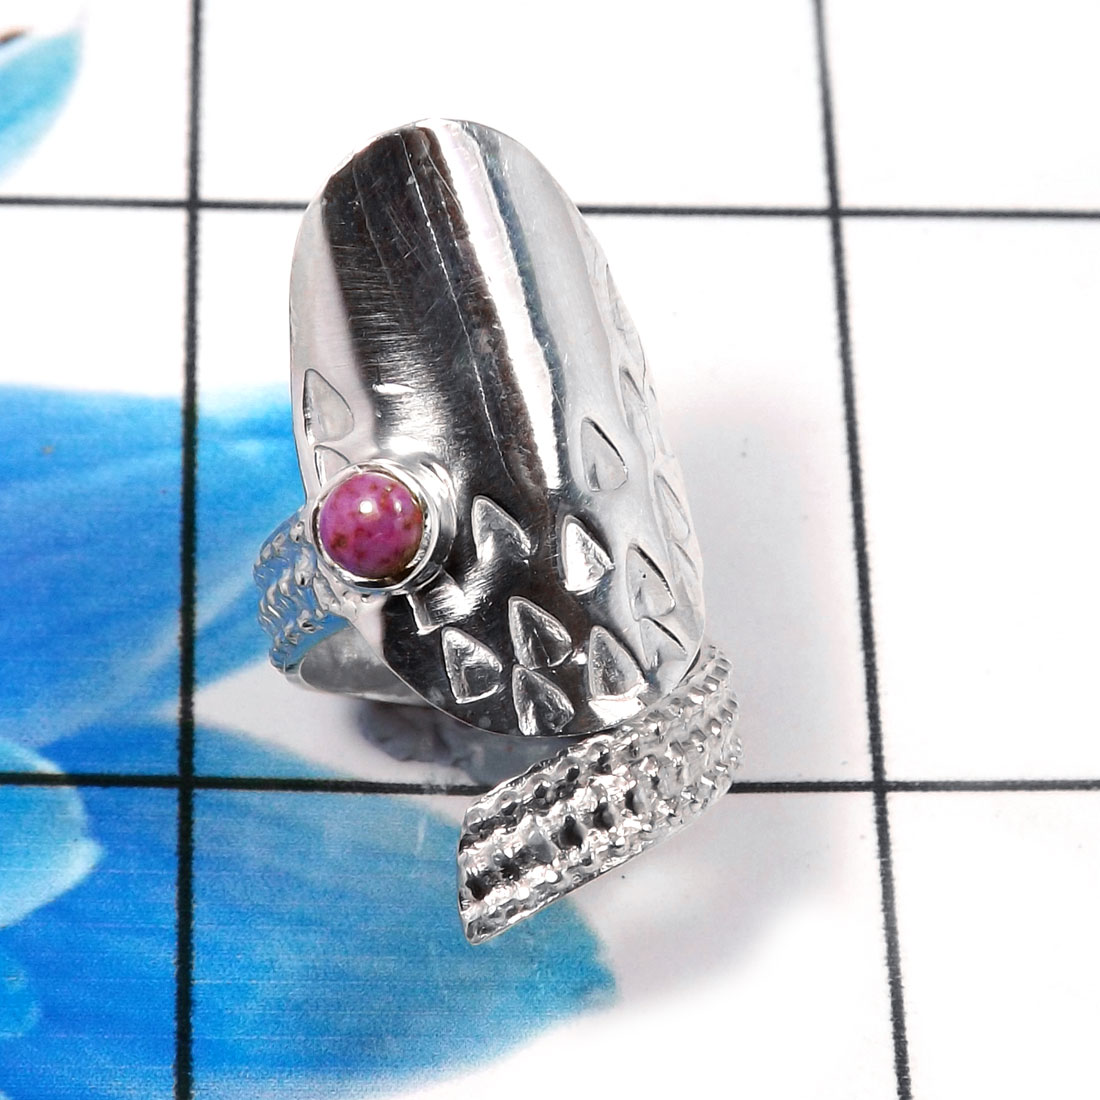 Nails Ring F - SNR993-Charming 925 Sterling Silver Factory Handmade Nails Ring